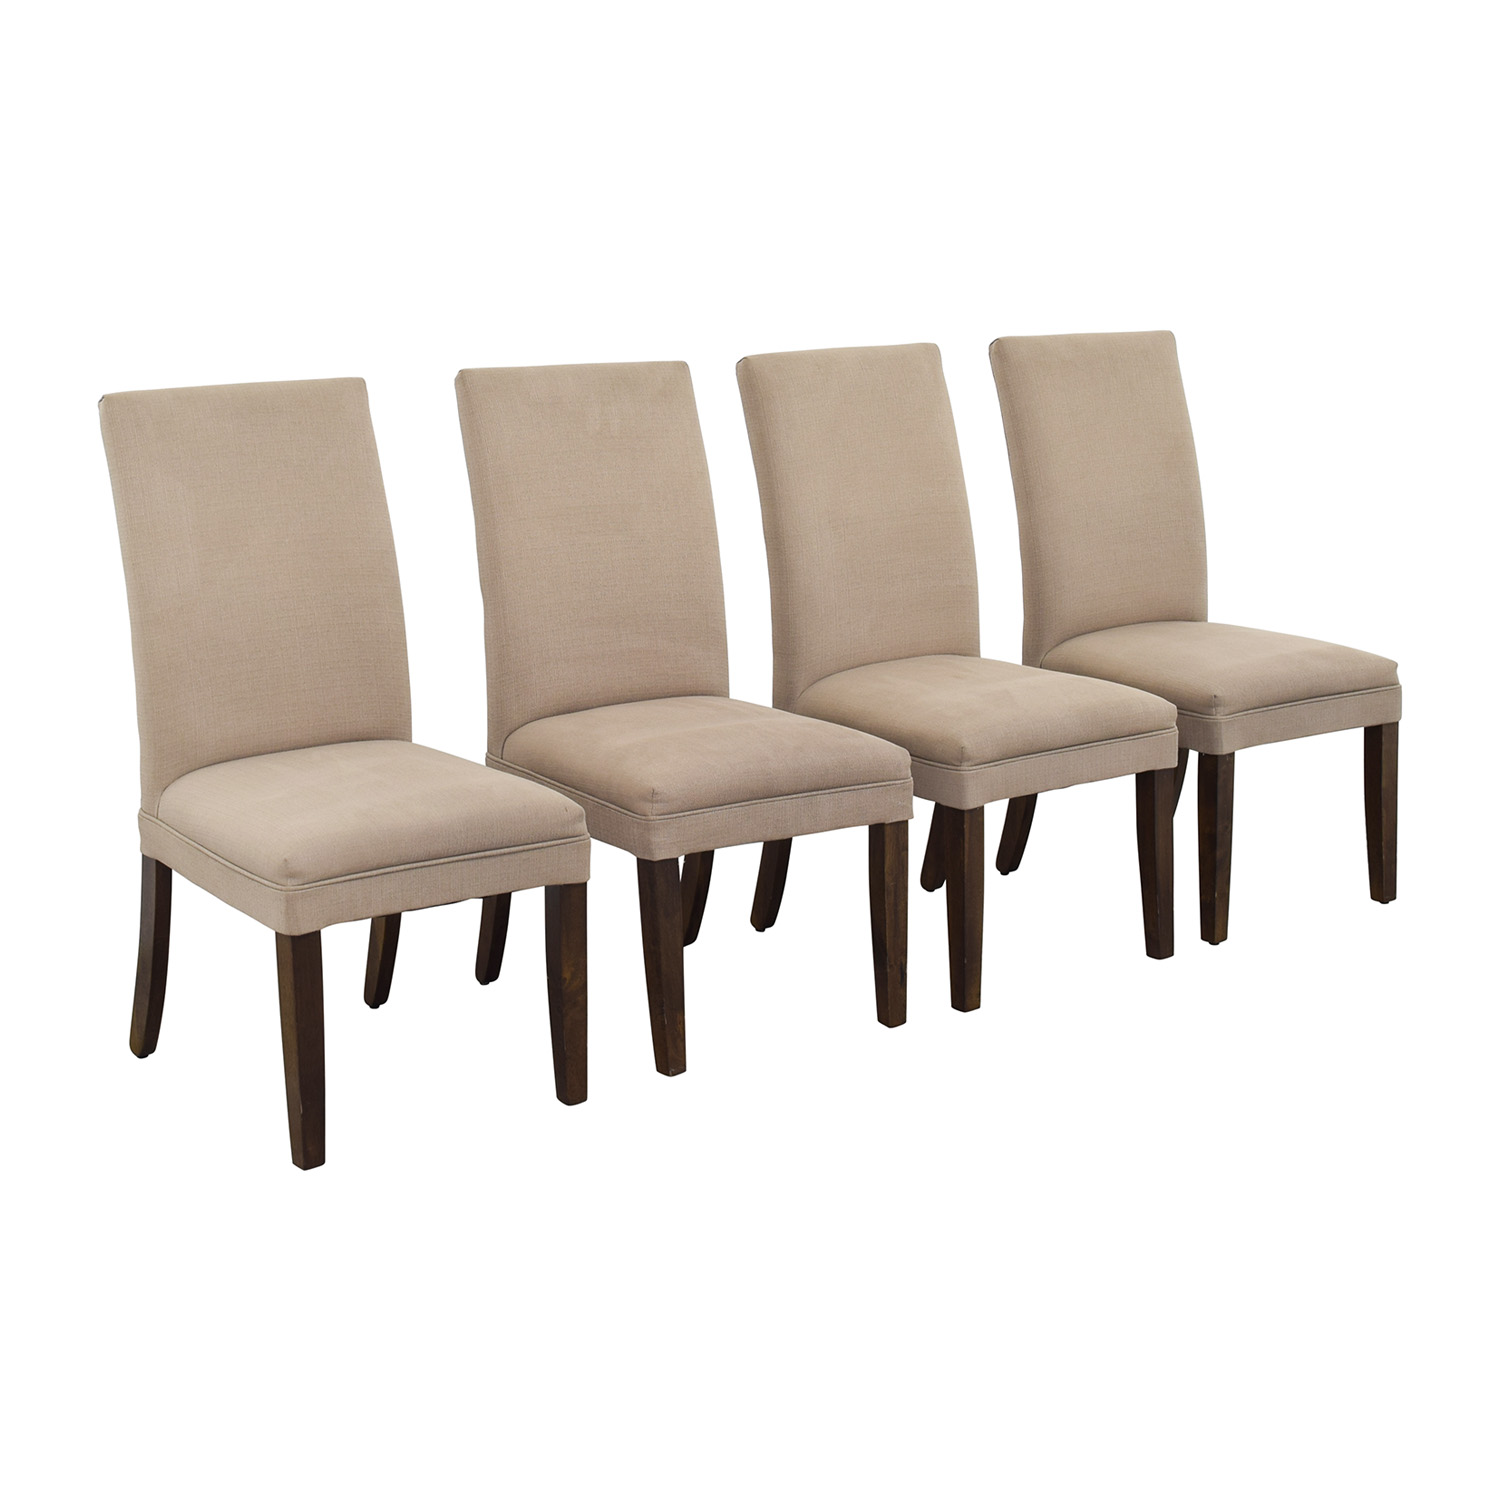 Tan Dining Room Chairs used